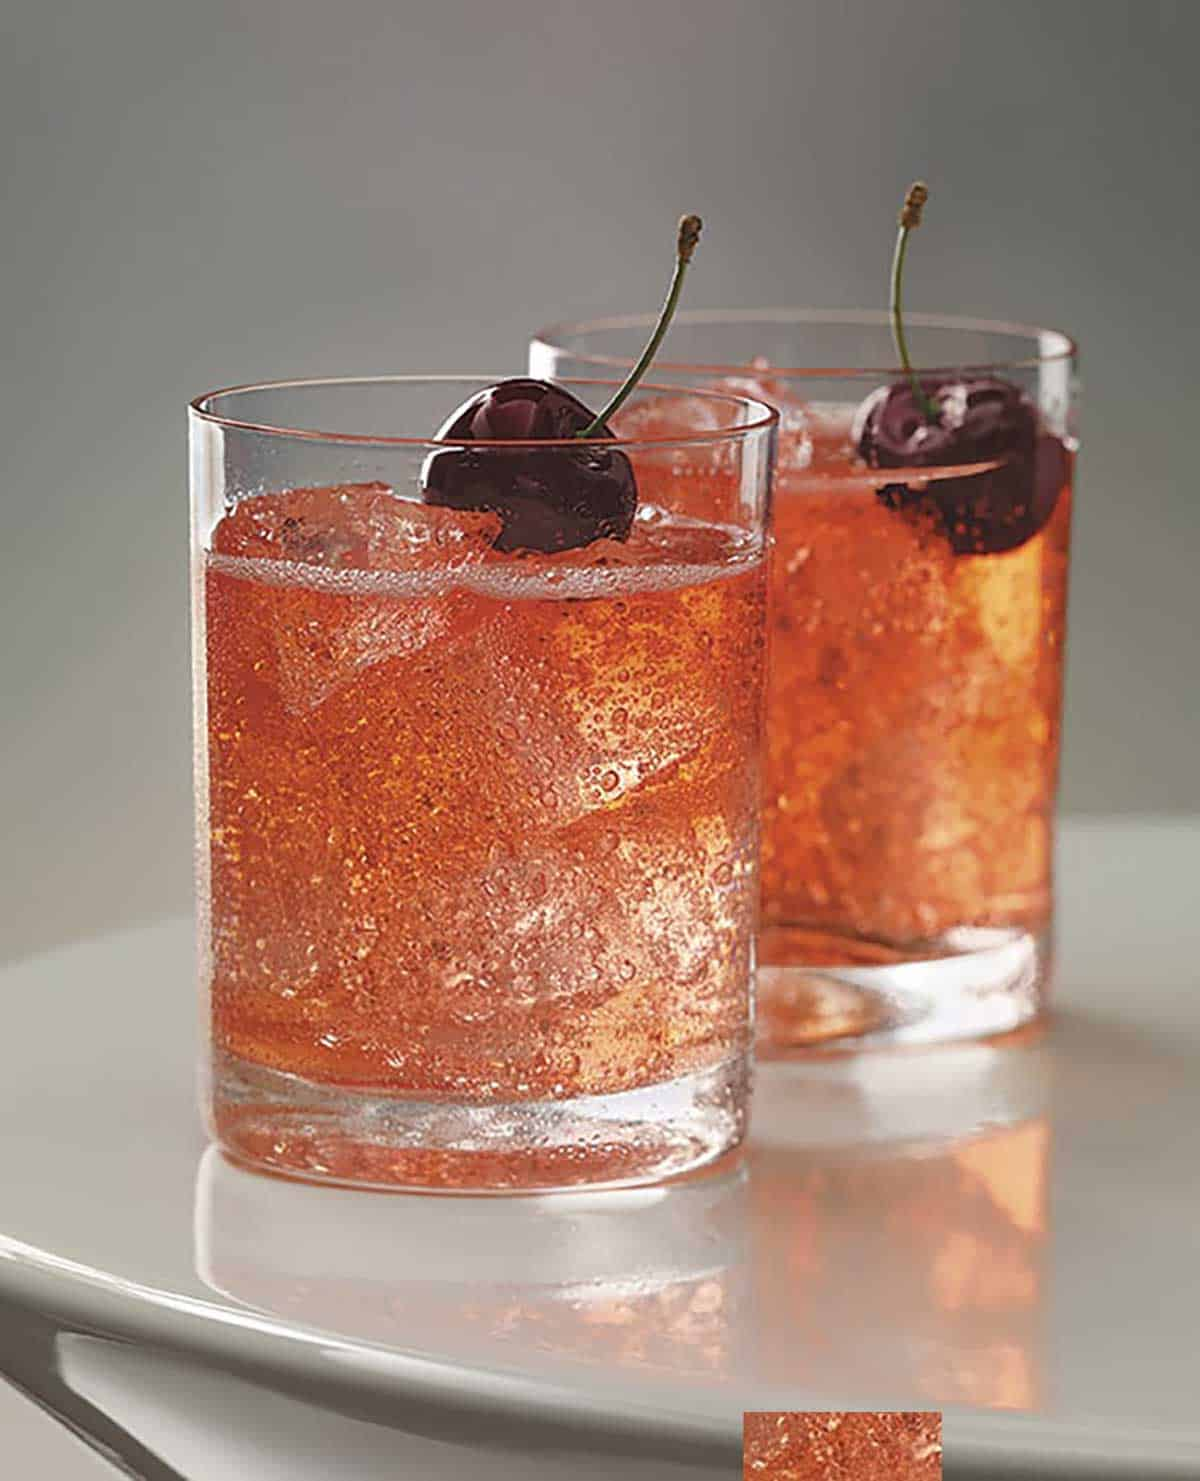 KensCocktail-55587-Cherry-Moon-Cocktail-original